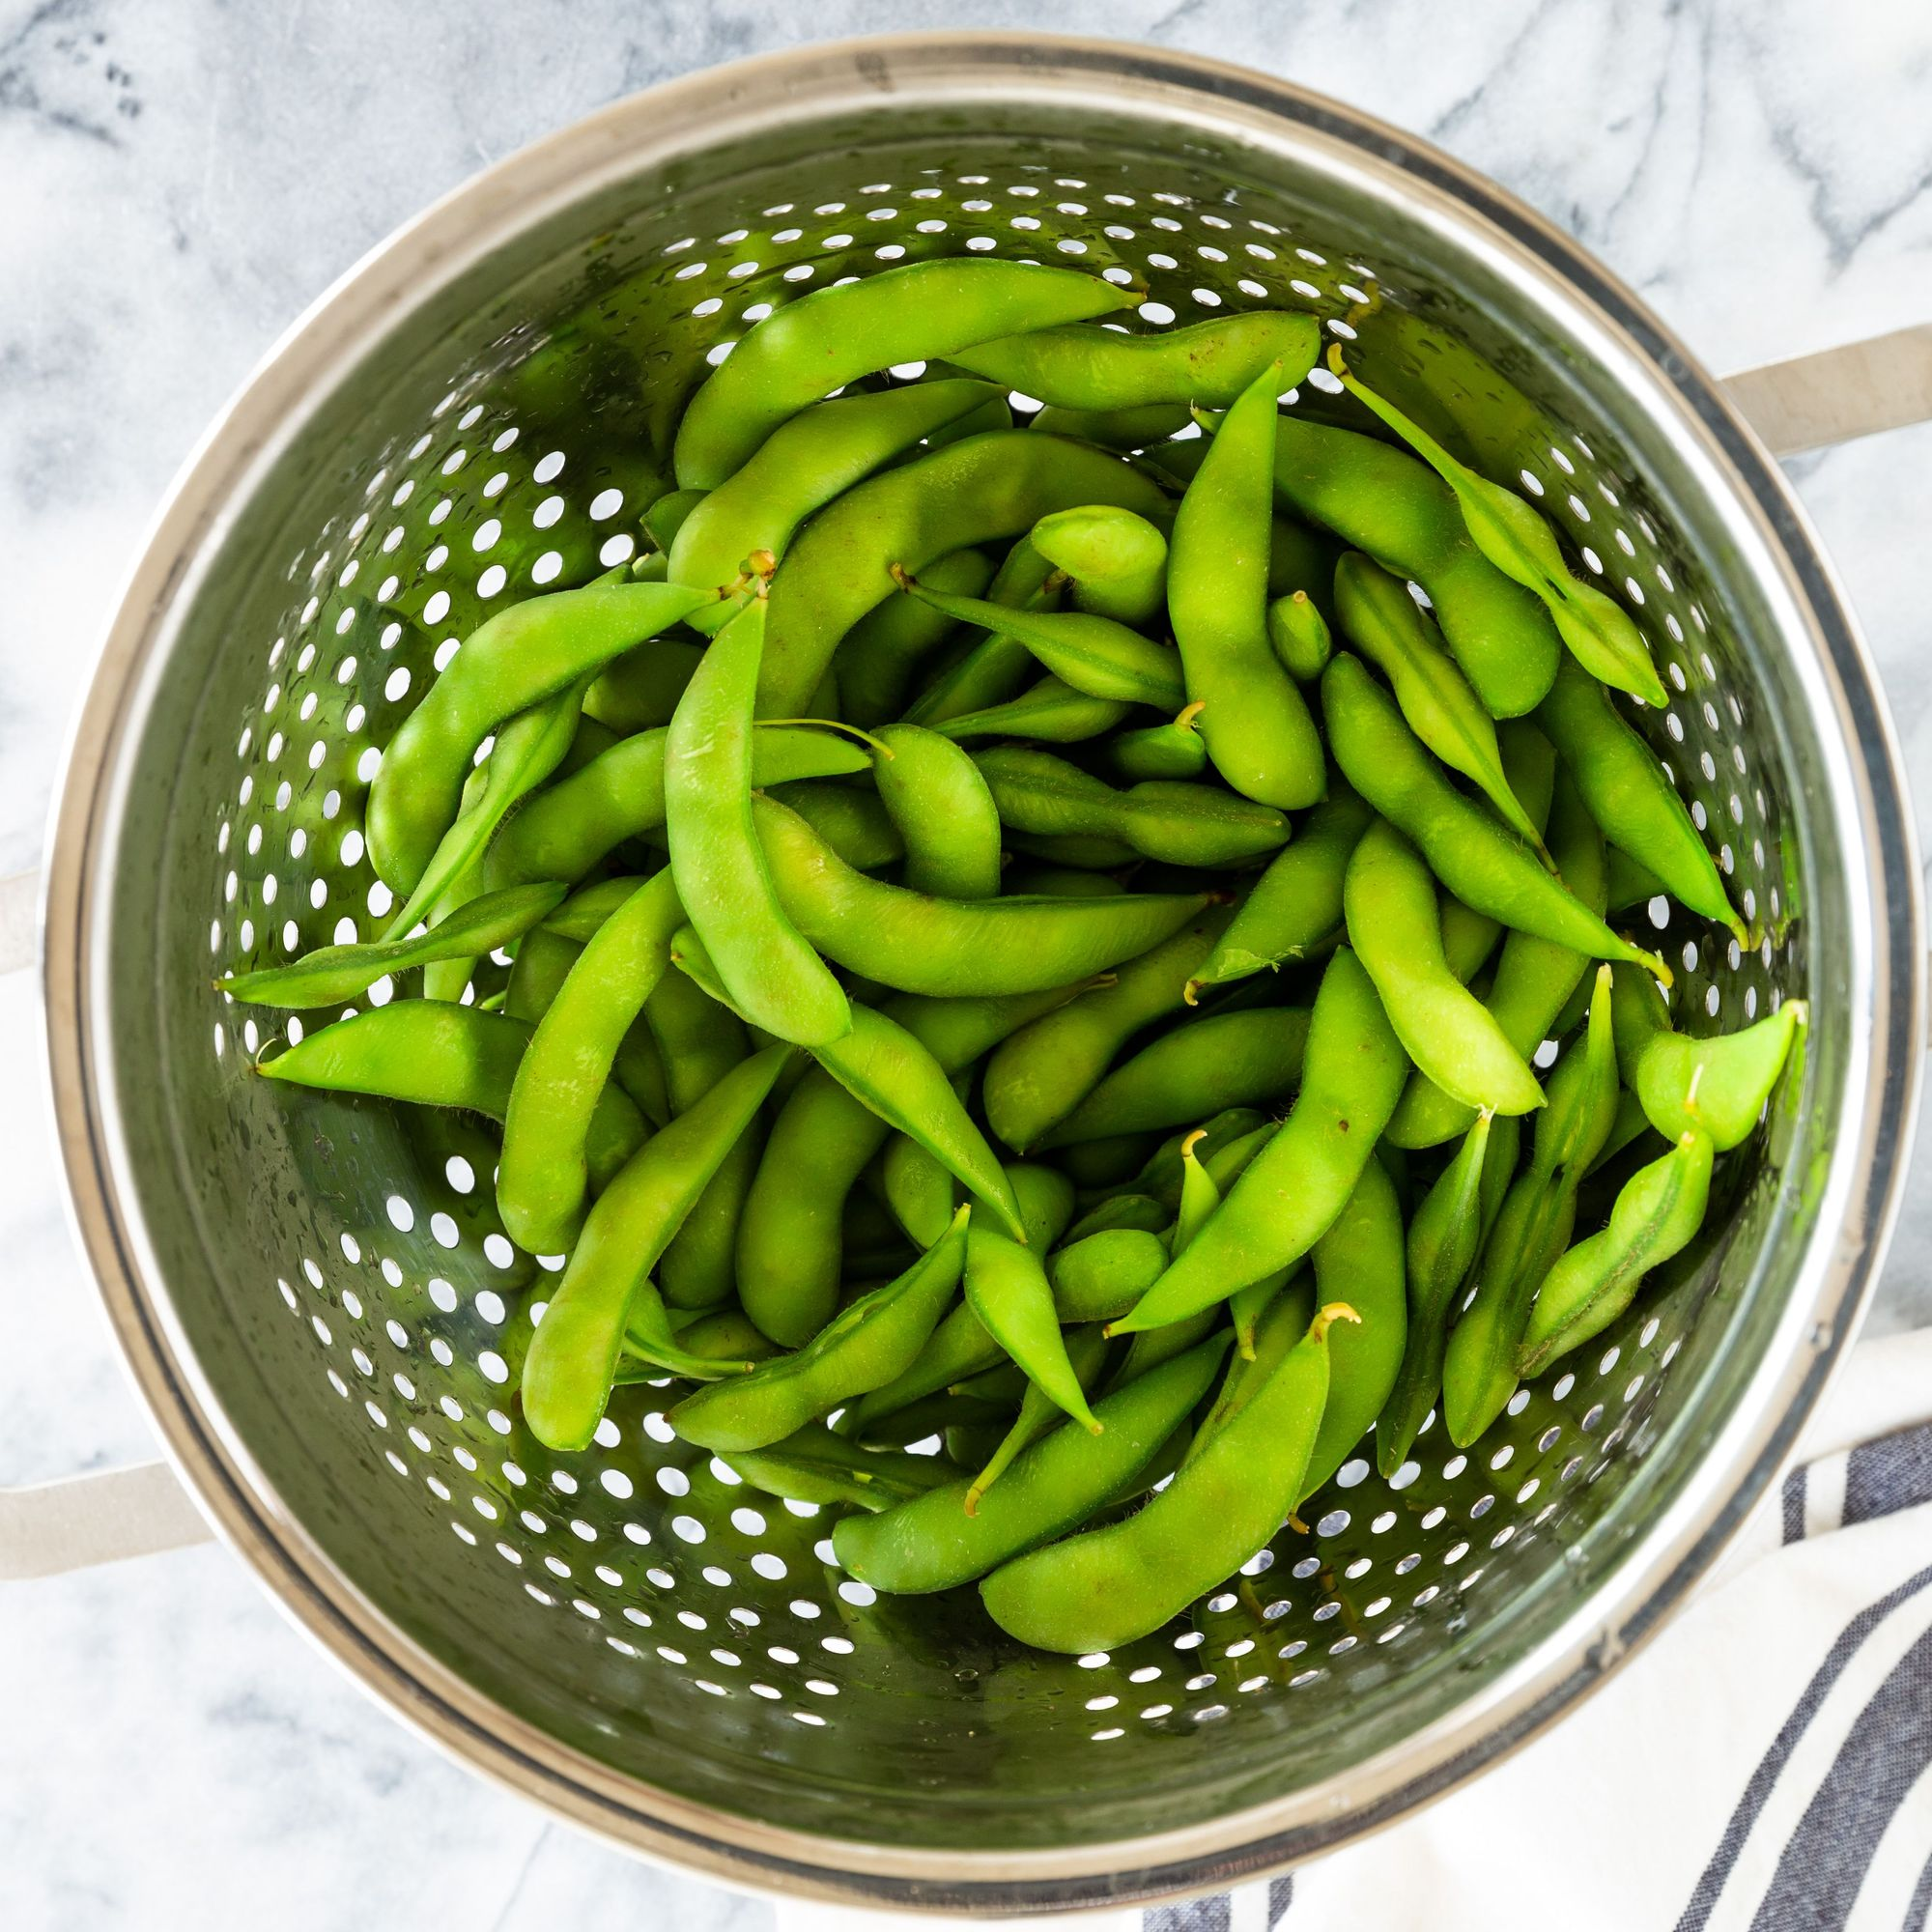 Are Edamame Beans Safe for Dogs?